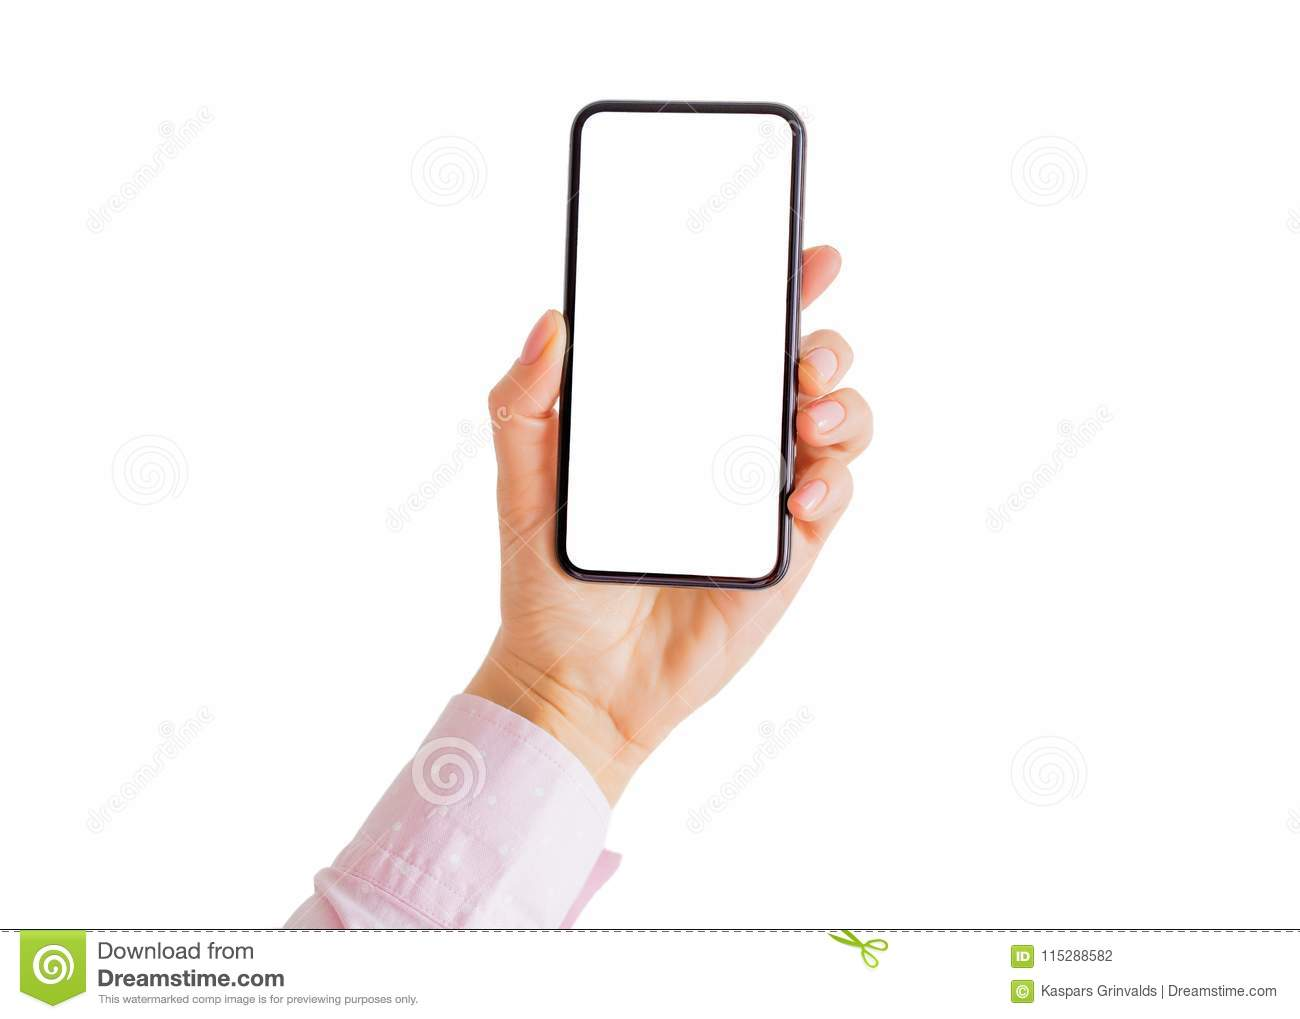 Person holding phone in hand with empty white screen.